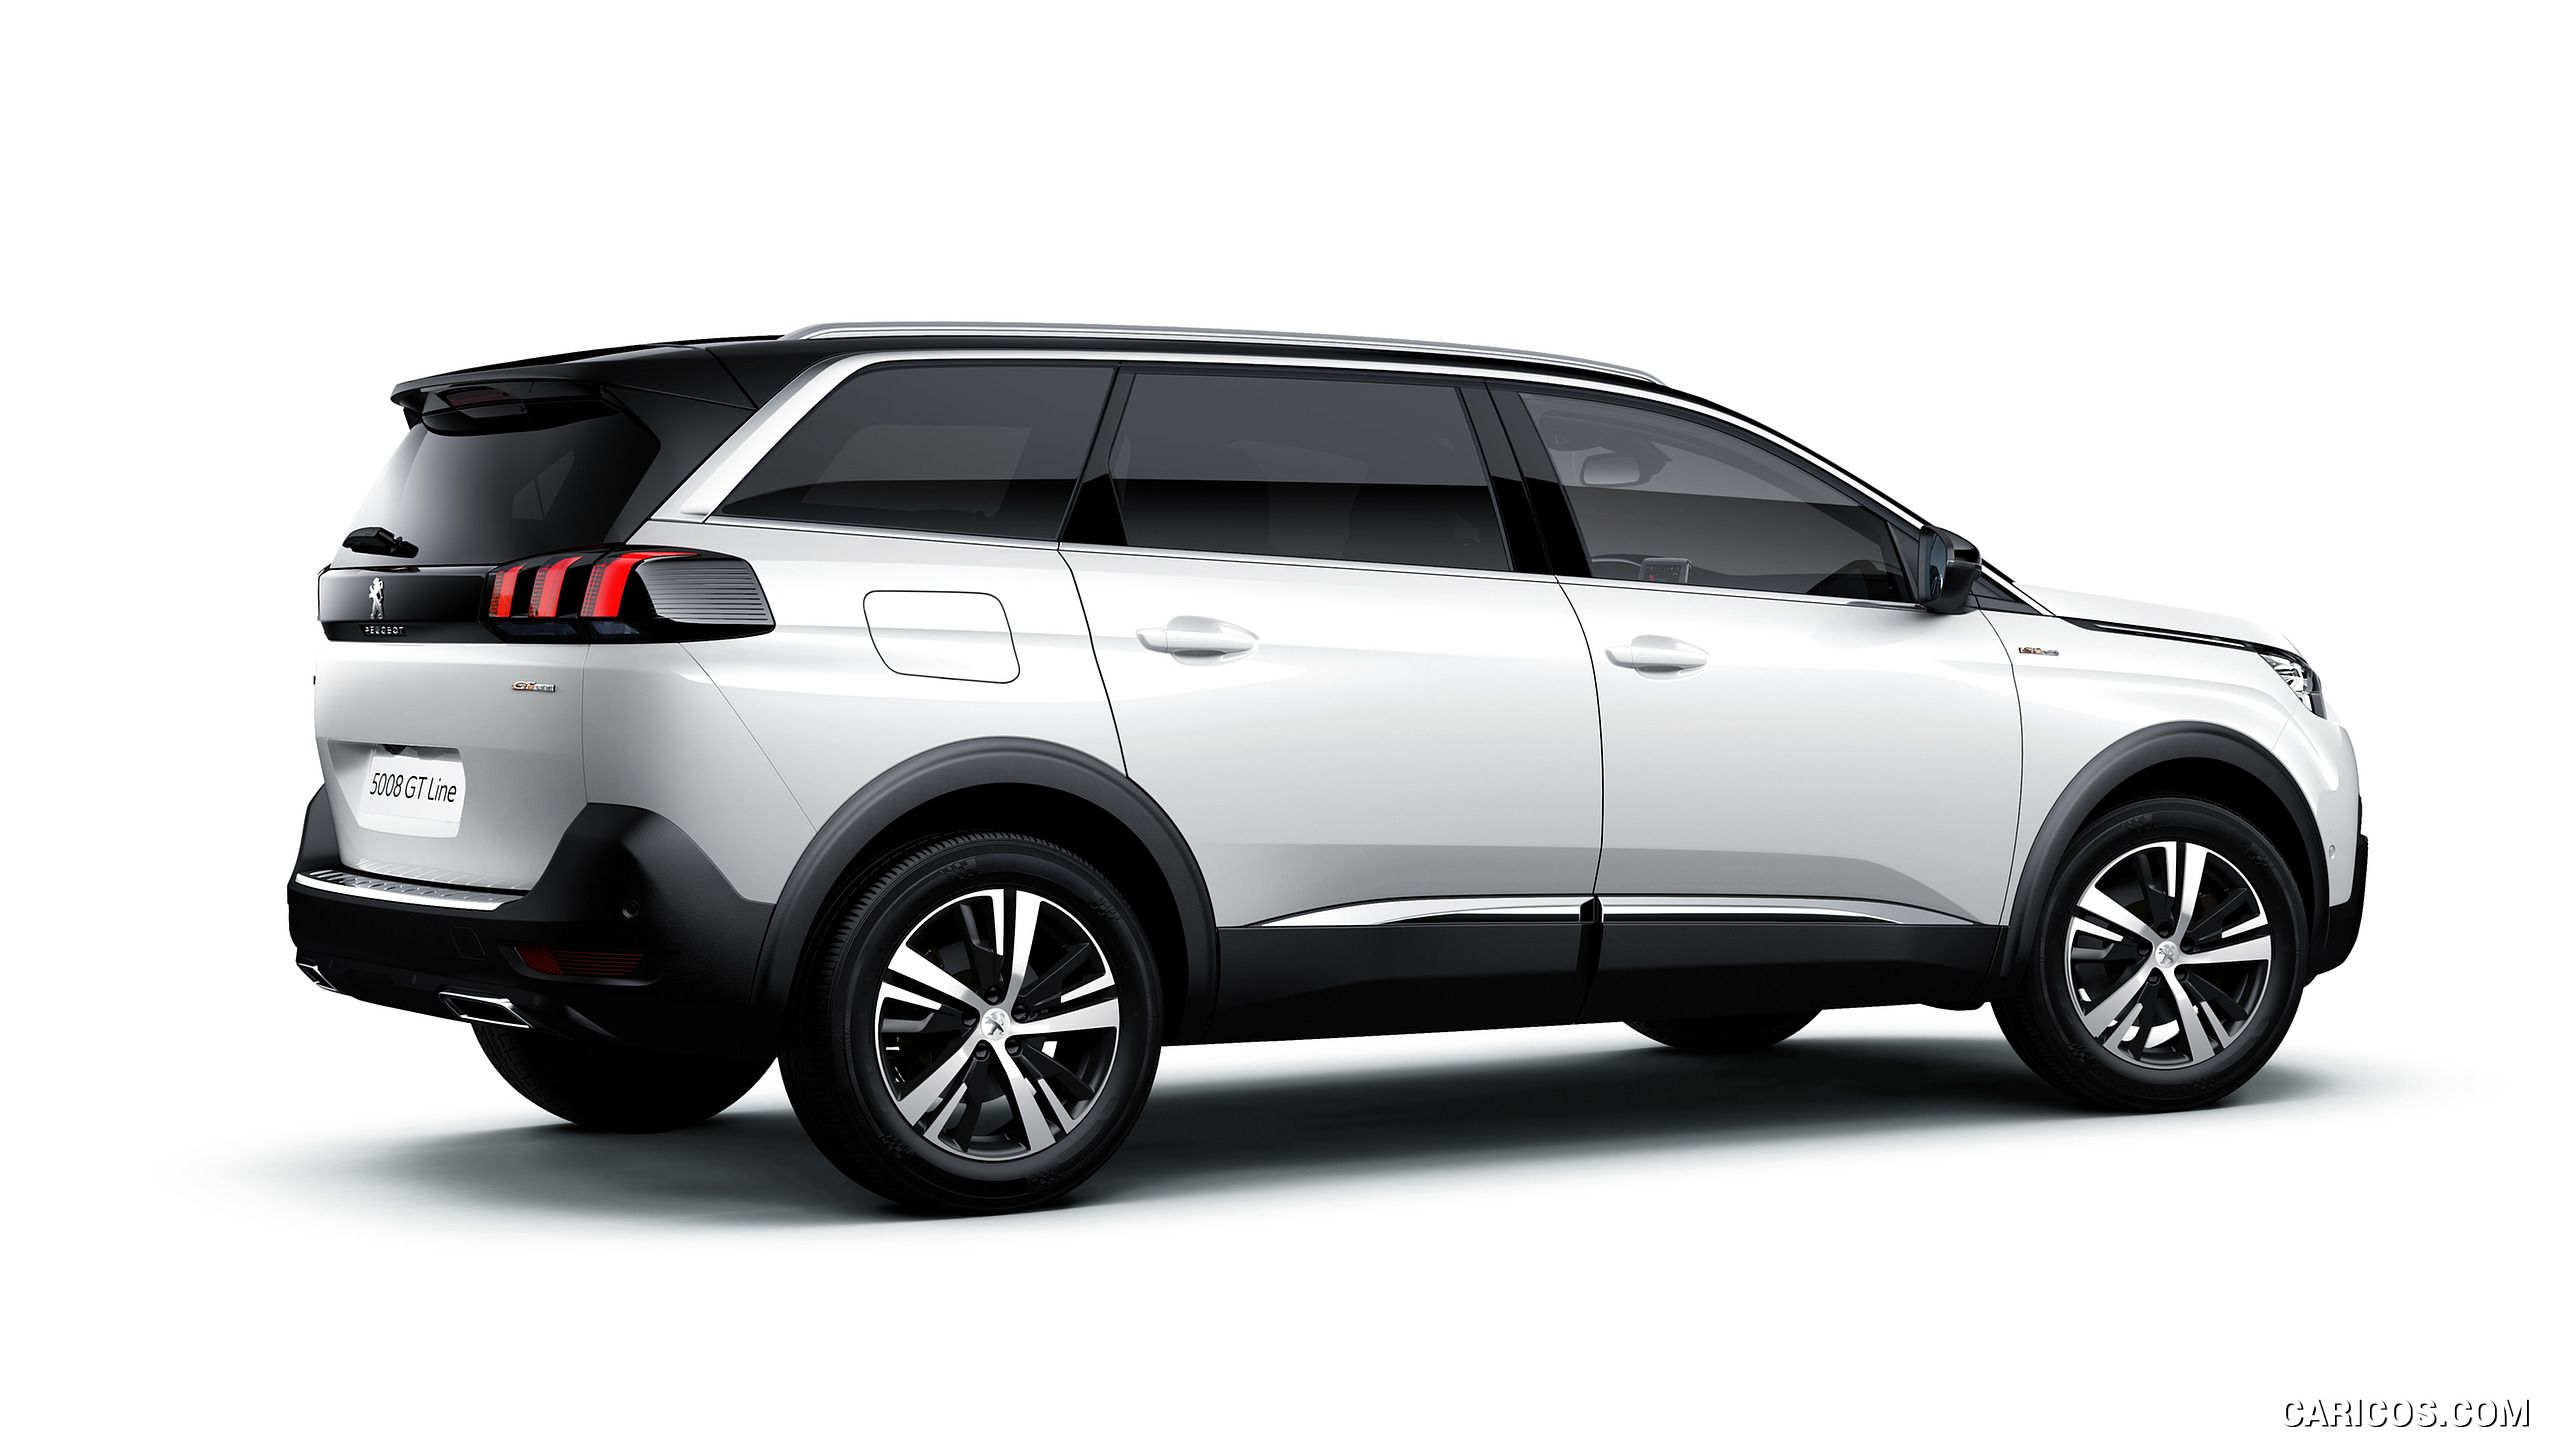 2017 Peugeot 5008 Gt And Gt Line Wallpaper Peugeot Automotive Artwork Seven Seater Suv